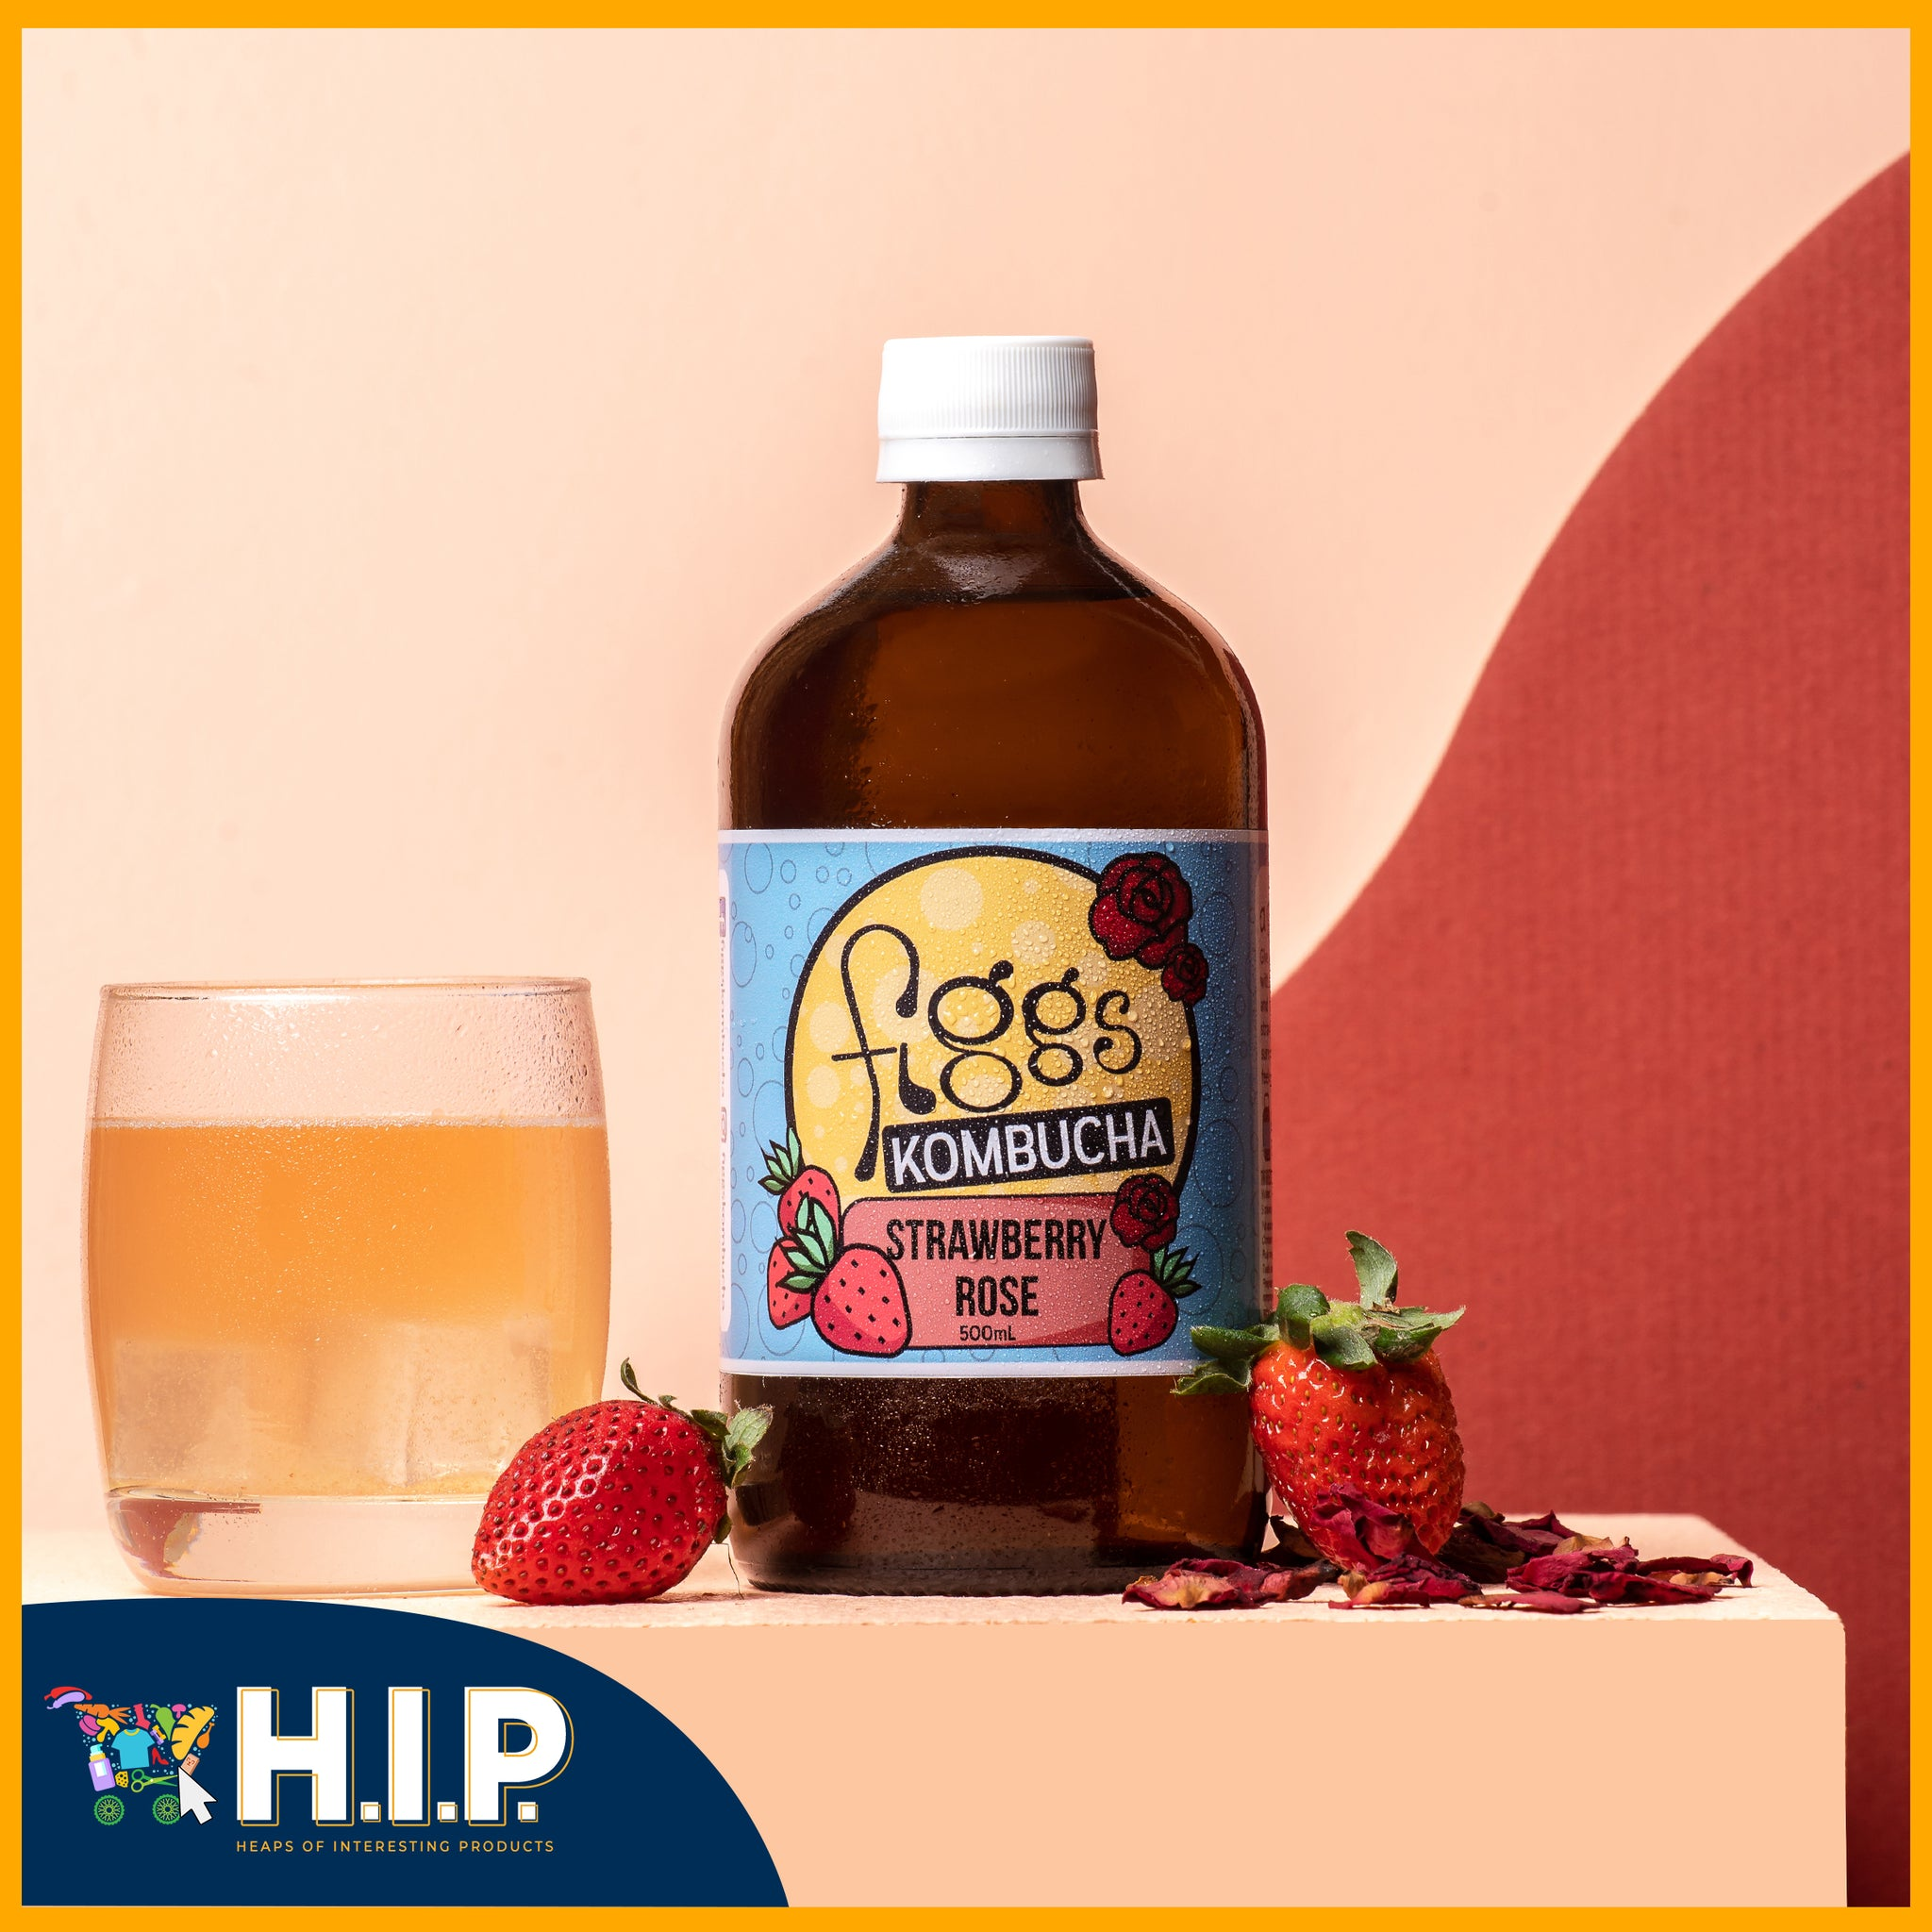 Figgs Kombucha - Strawberry Rose